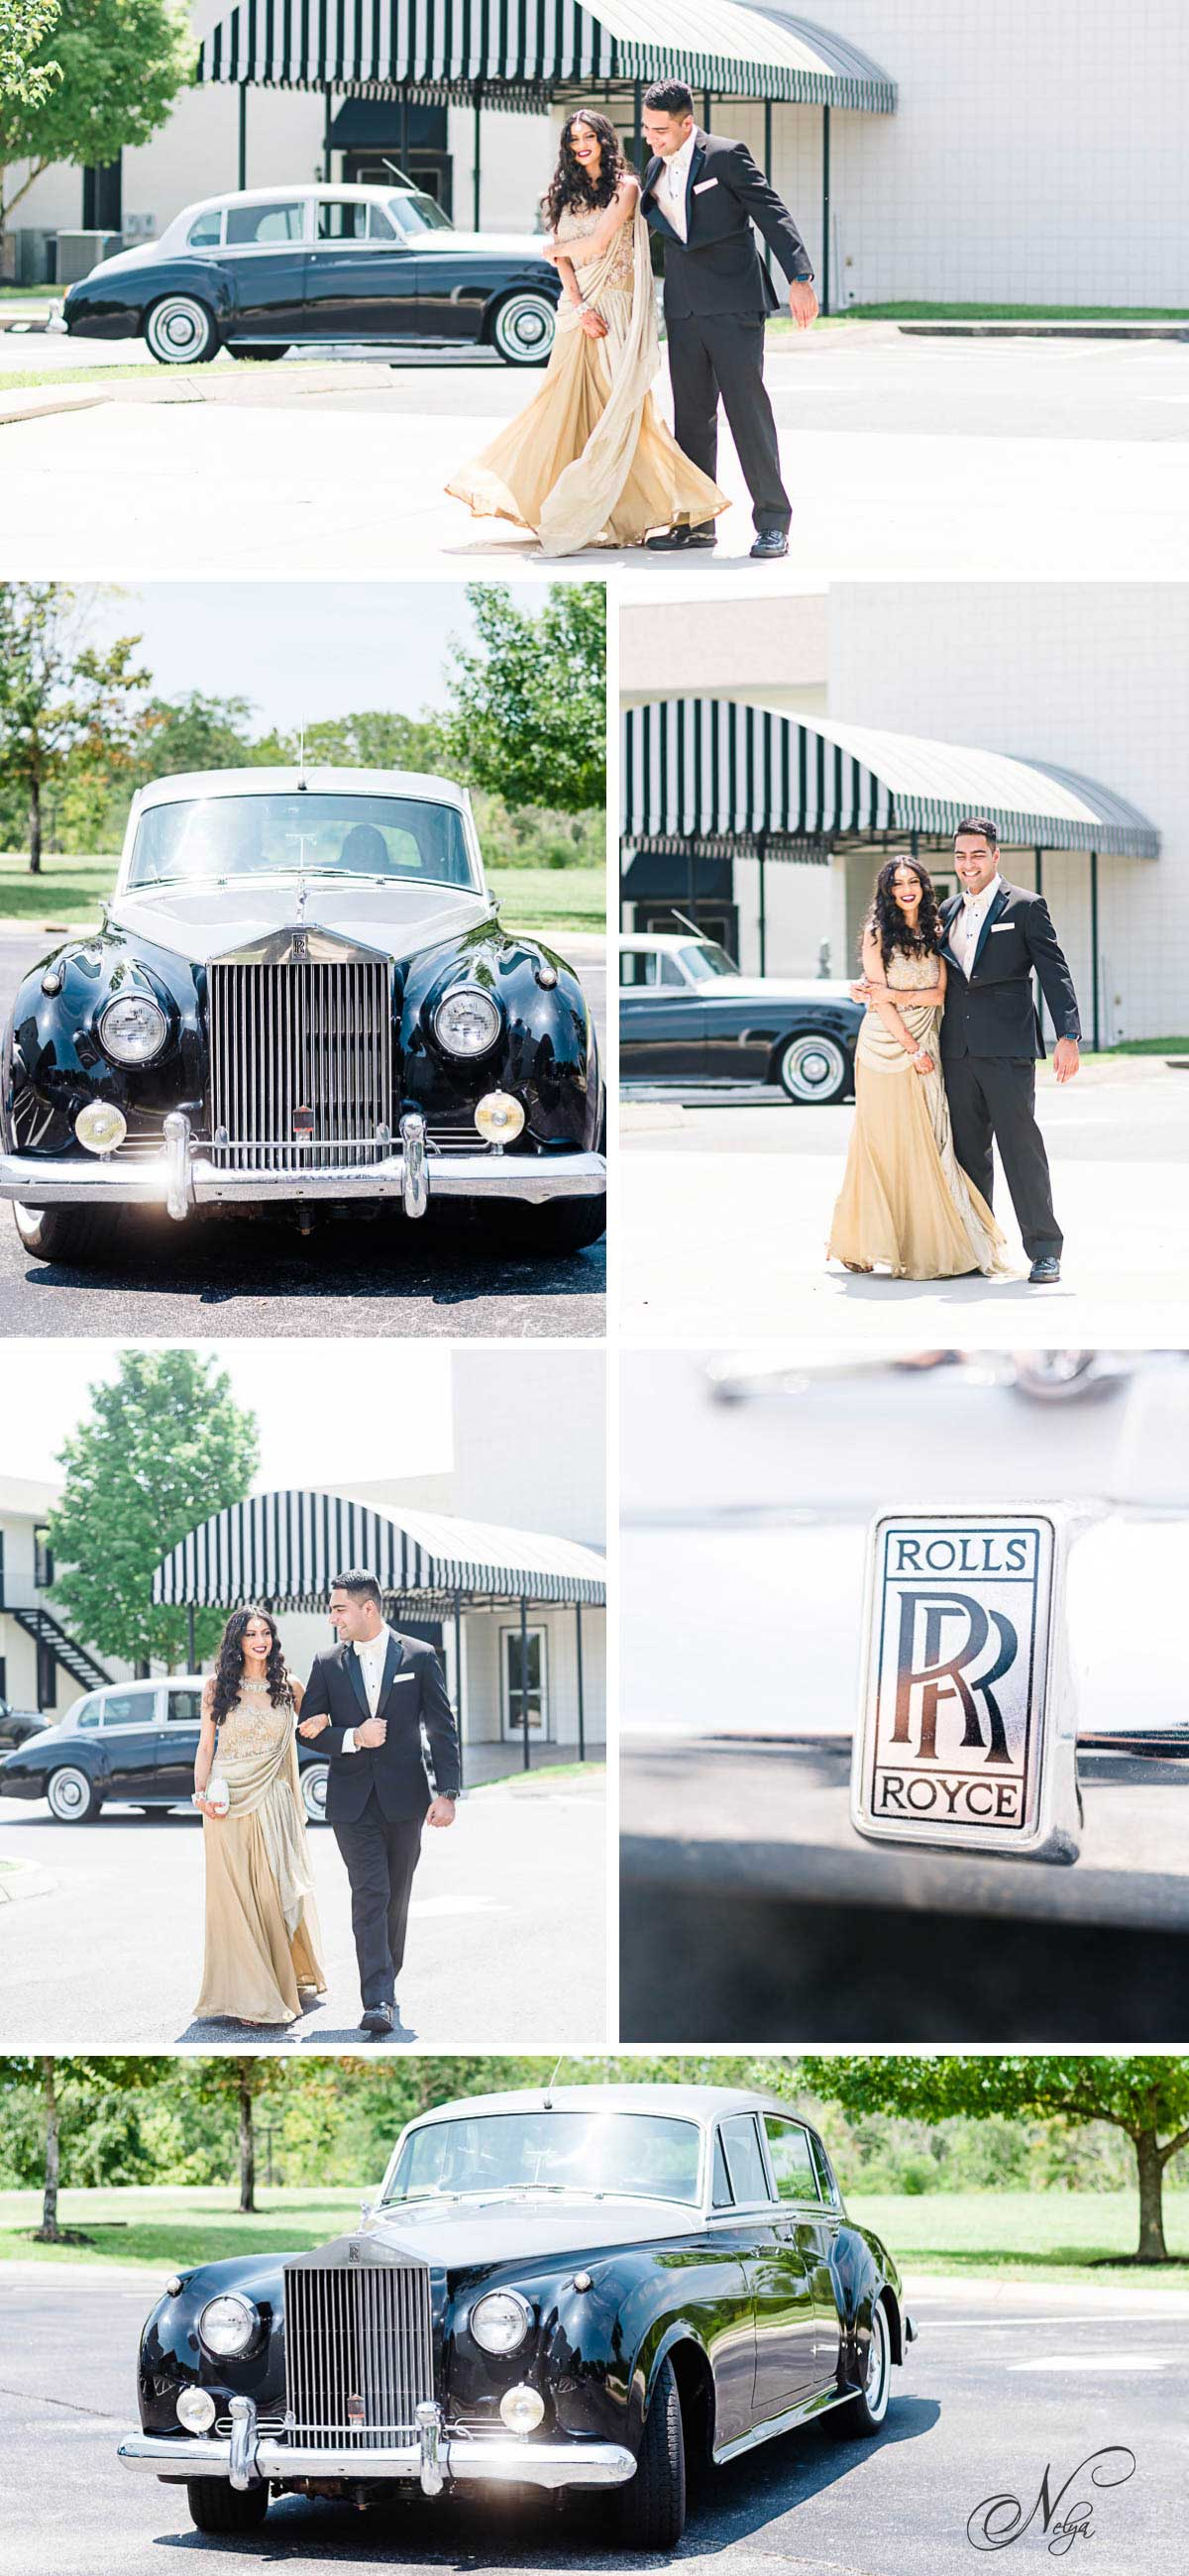 black and silver Rolls Royce rental in Knoxville TN at Bridgewater events. And engaged couple wearing a gold dress and black suit